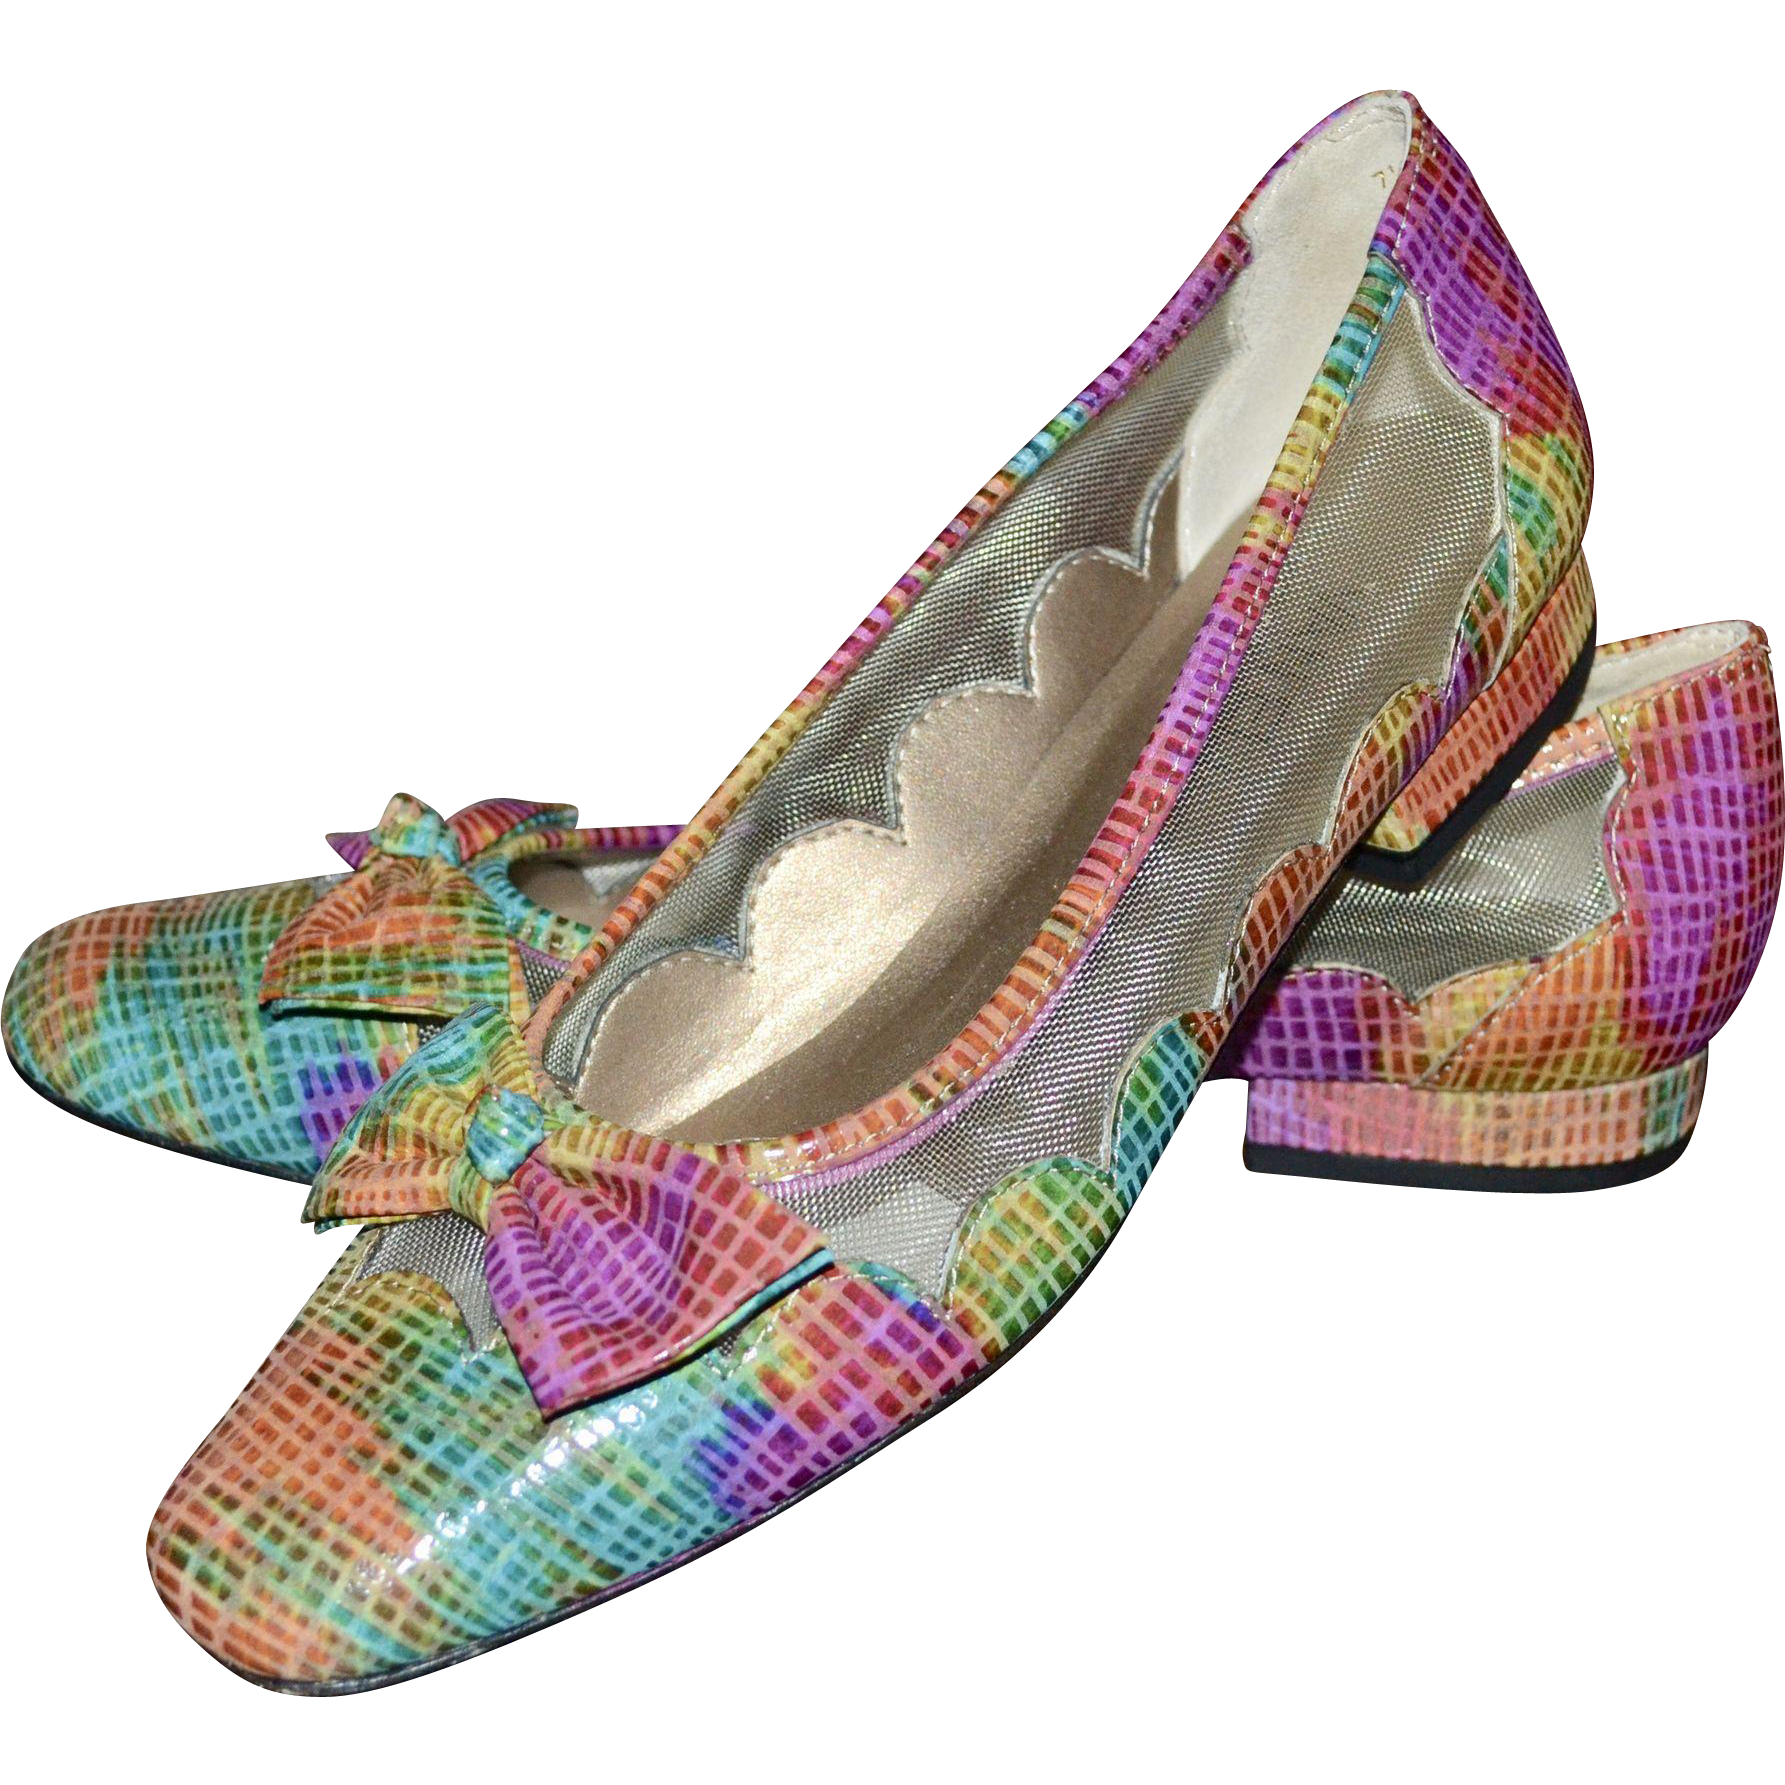 Van Eli Colorful Pink, Orange, Blue & Green Rainbow Snakeskin Leather Bow Flats ~ Size 7.5